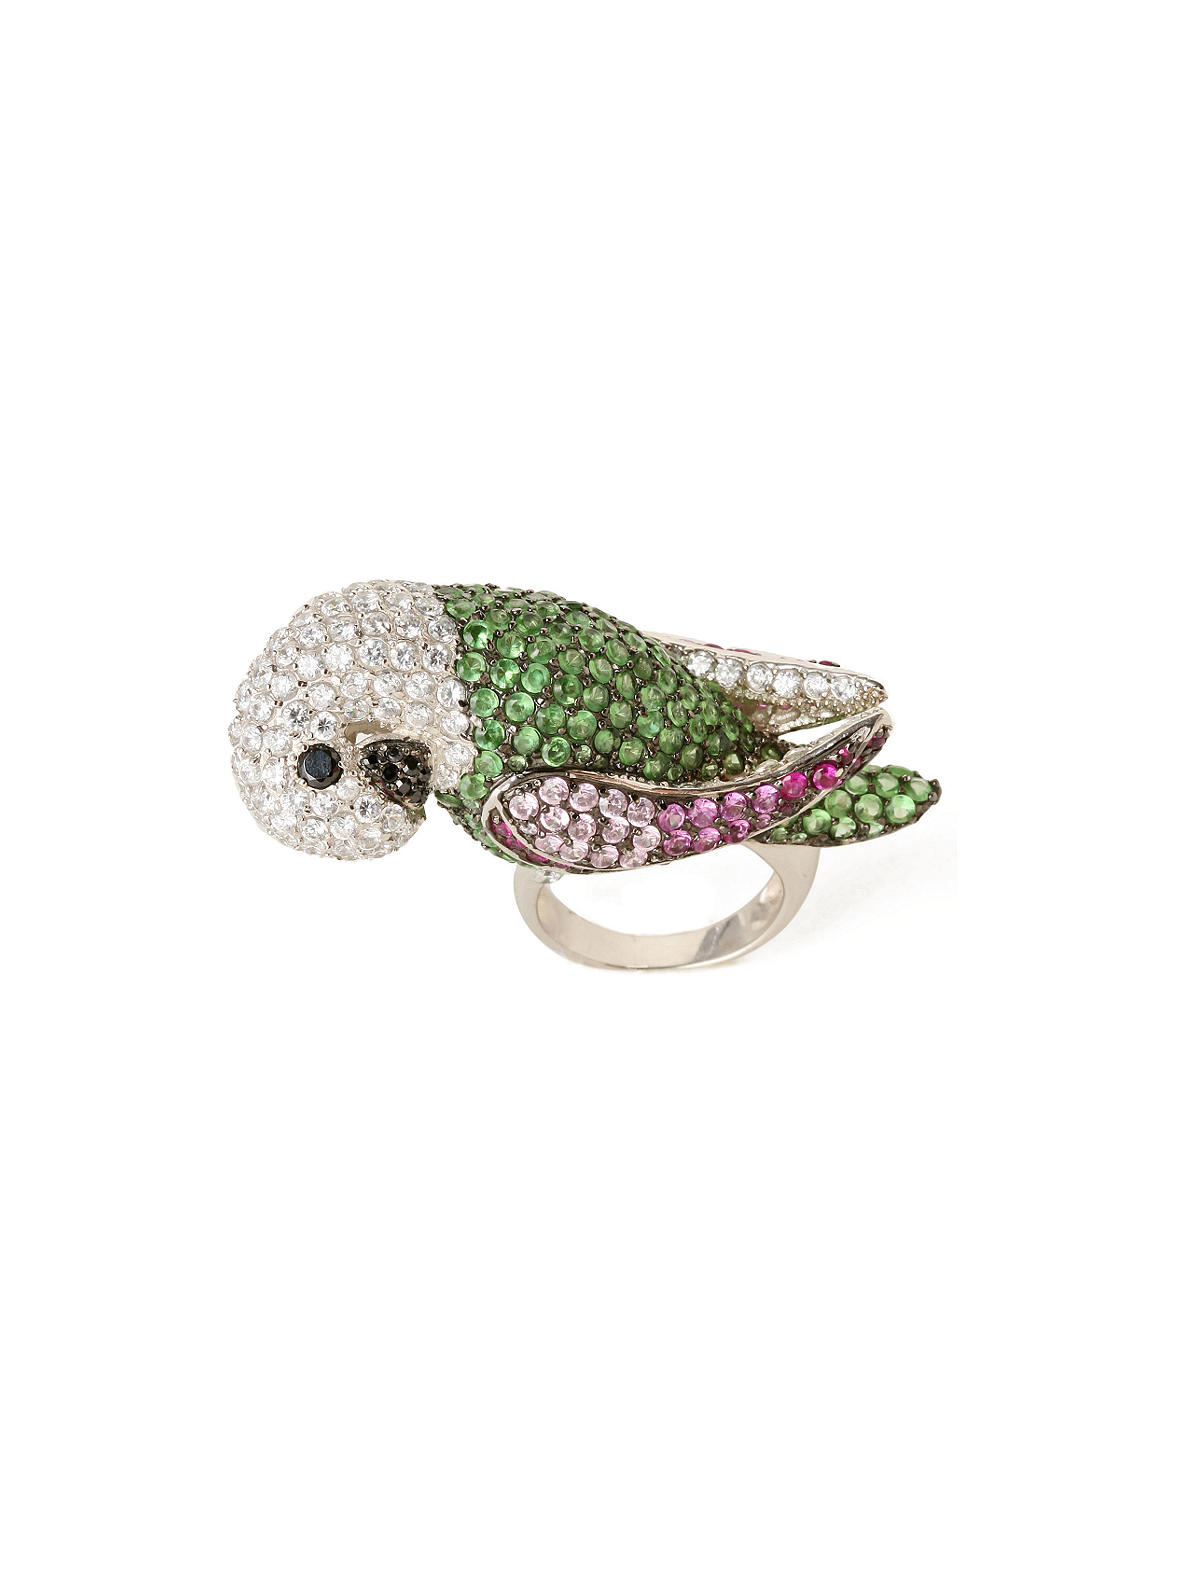 Jeweled Parrot Ring Anthropologie com from anthropologie.com